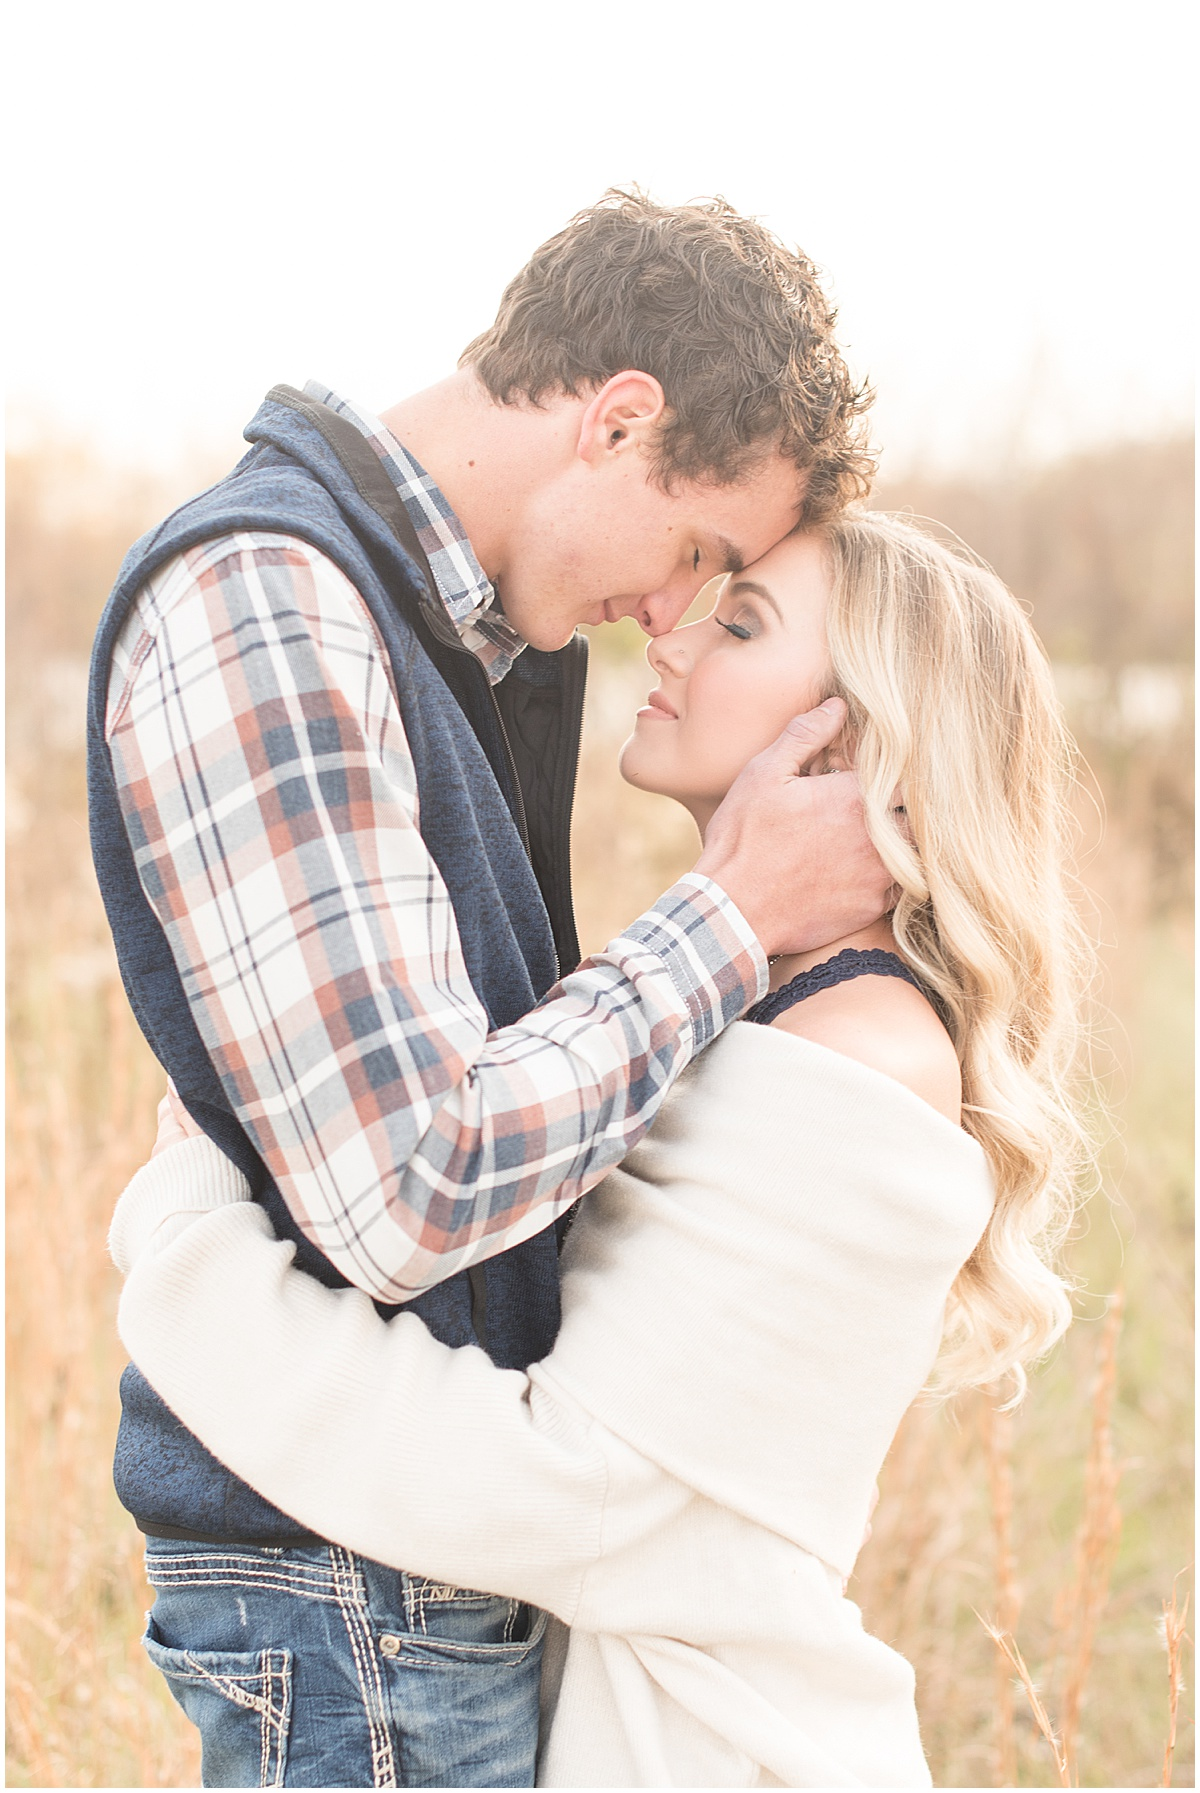 Wyatt Willson and Kaelyn Shircliff engagement session at Fairfield Lakes Park in Lafayette Indiana 16.jpg